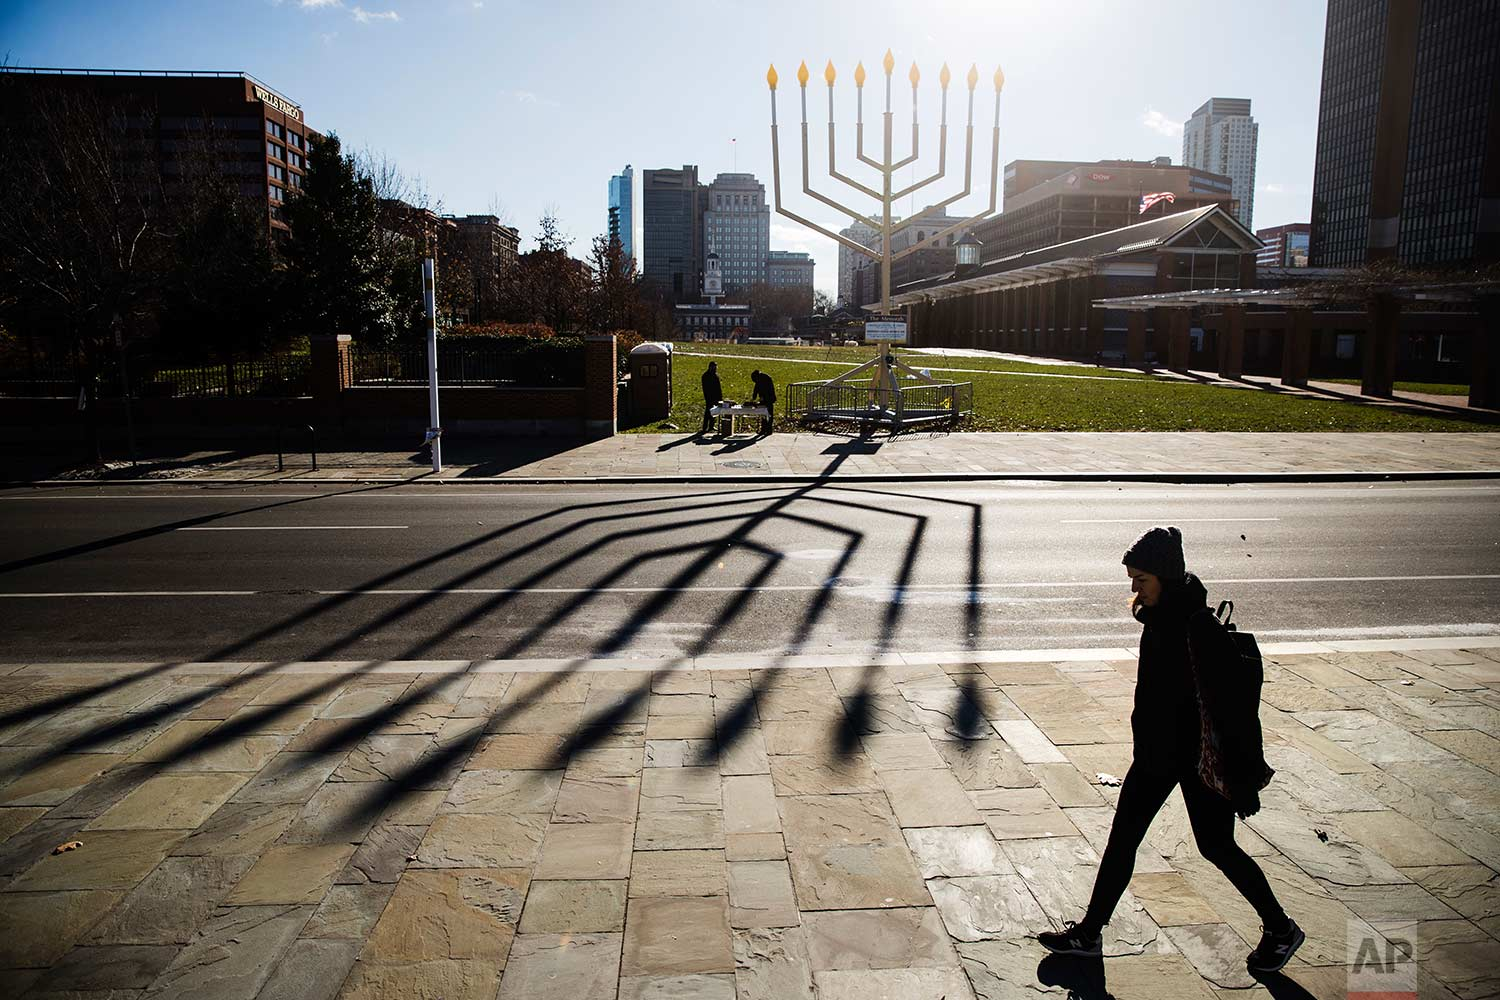 A woman passes by a menorah on Independence Mall in Philadelphia ahead of the second night of Hanukkah, Wednesday, Dec. 13, 2017. (AP Photo/Matt Rourke)